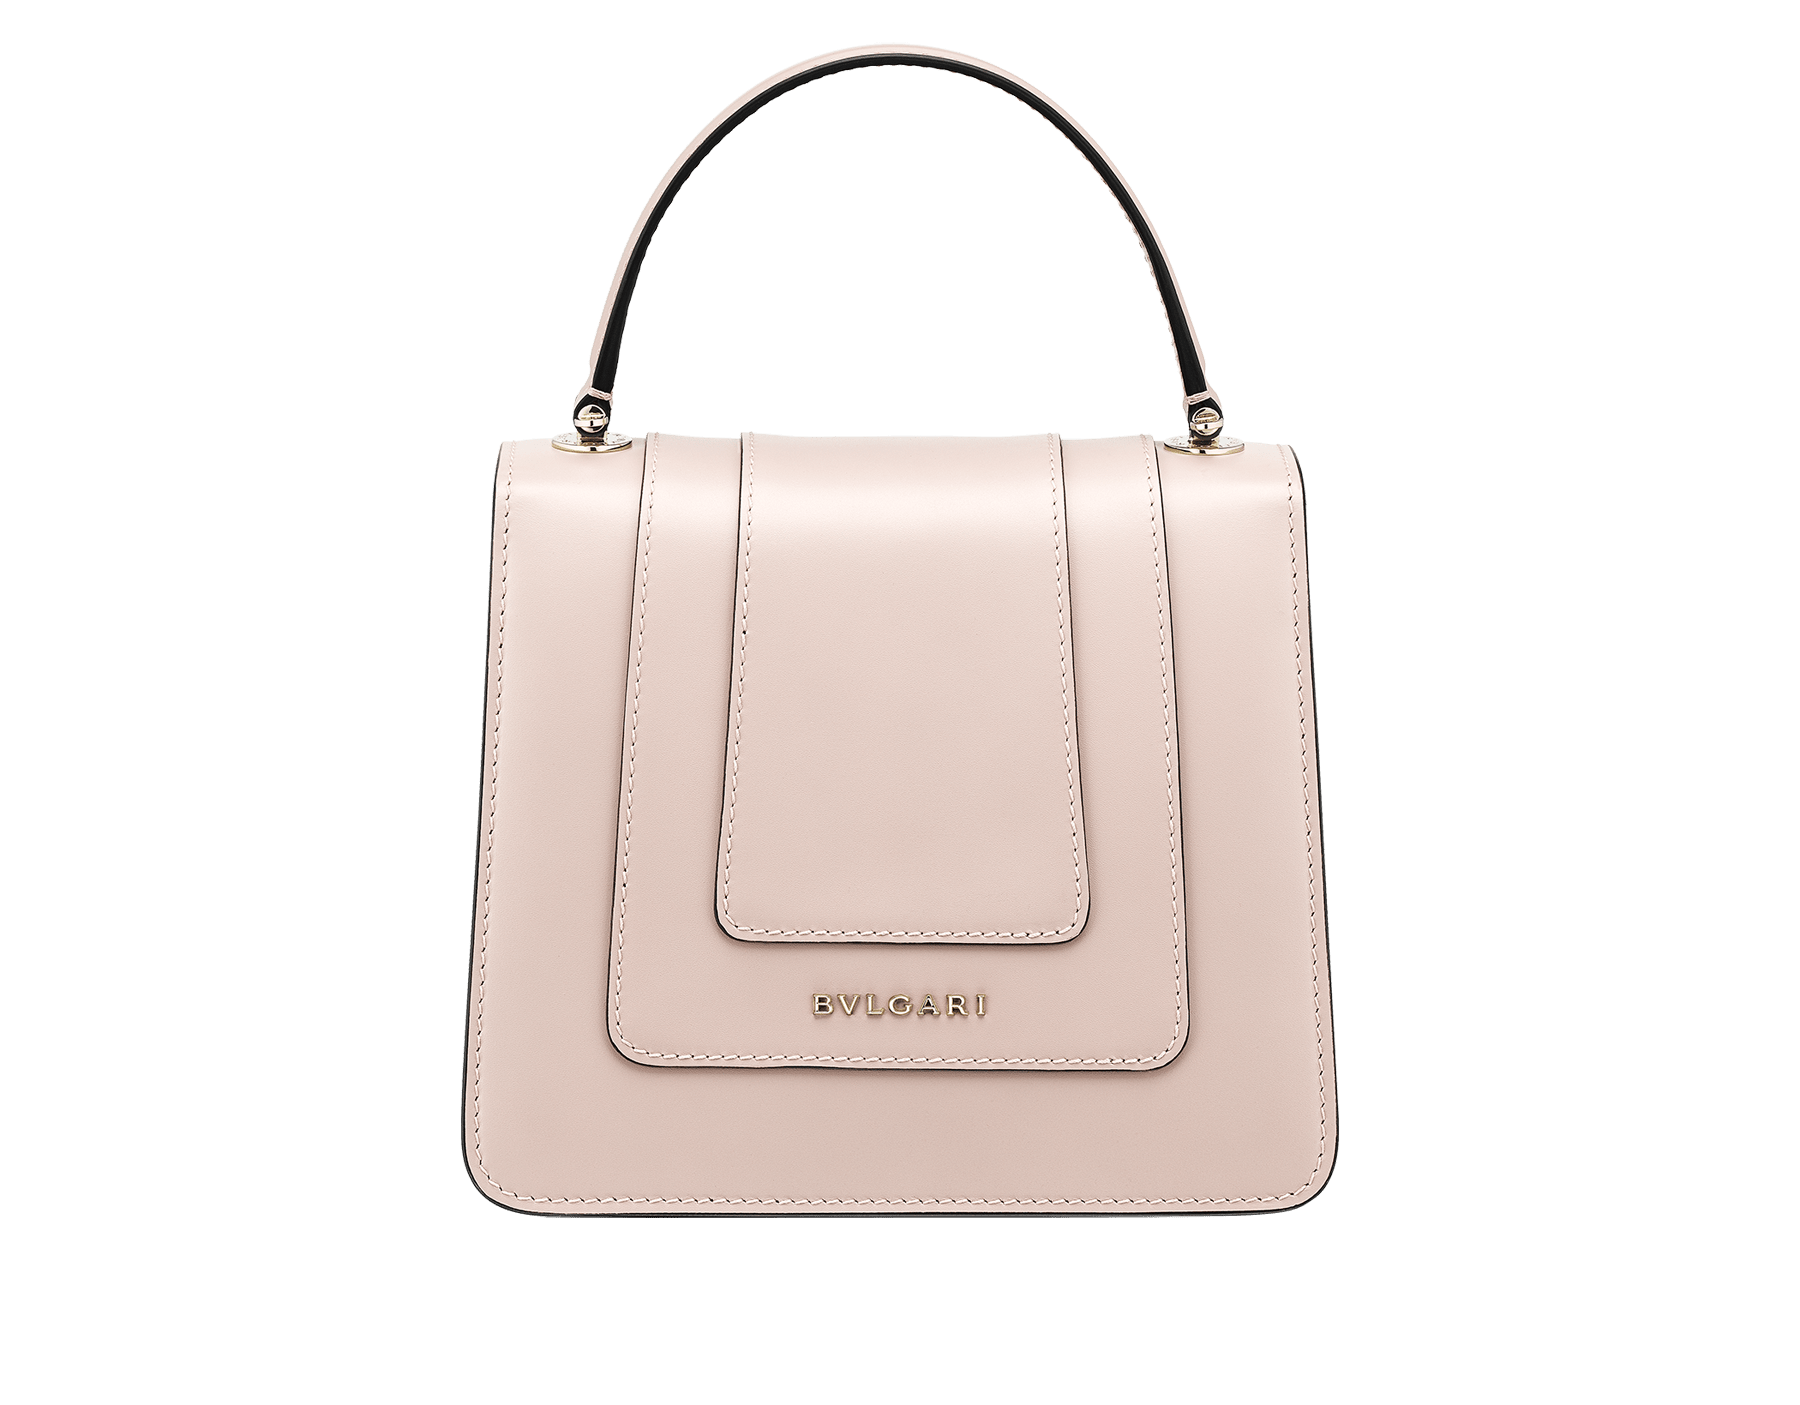 """Serpenti Forever"" crossbody bag in crystal rose calf leather. Iconic snakehead closure in light gold plated brass enriched with black and white enamel and green malachite eyes 287030 image 3"